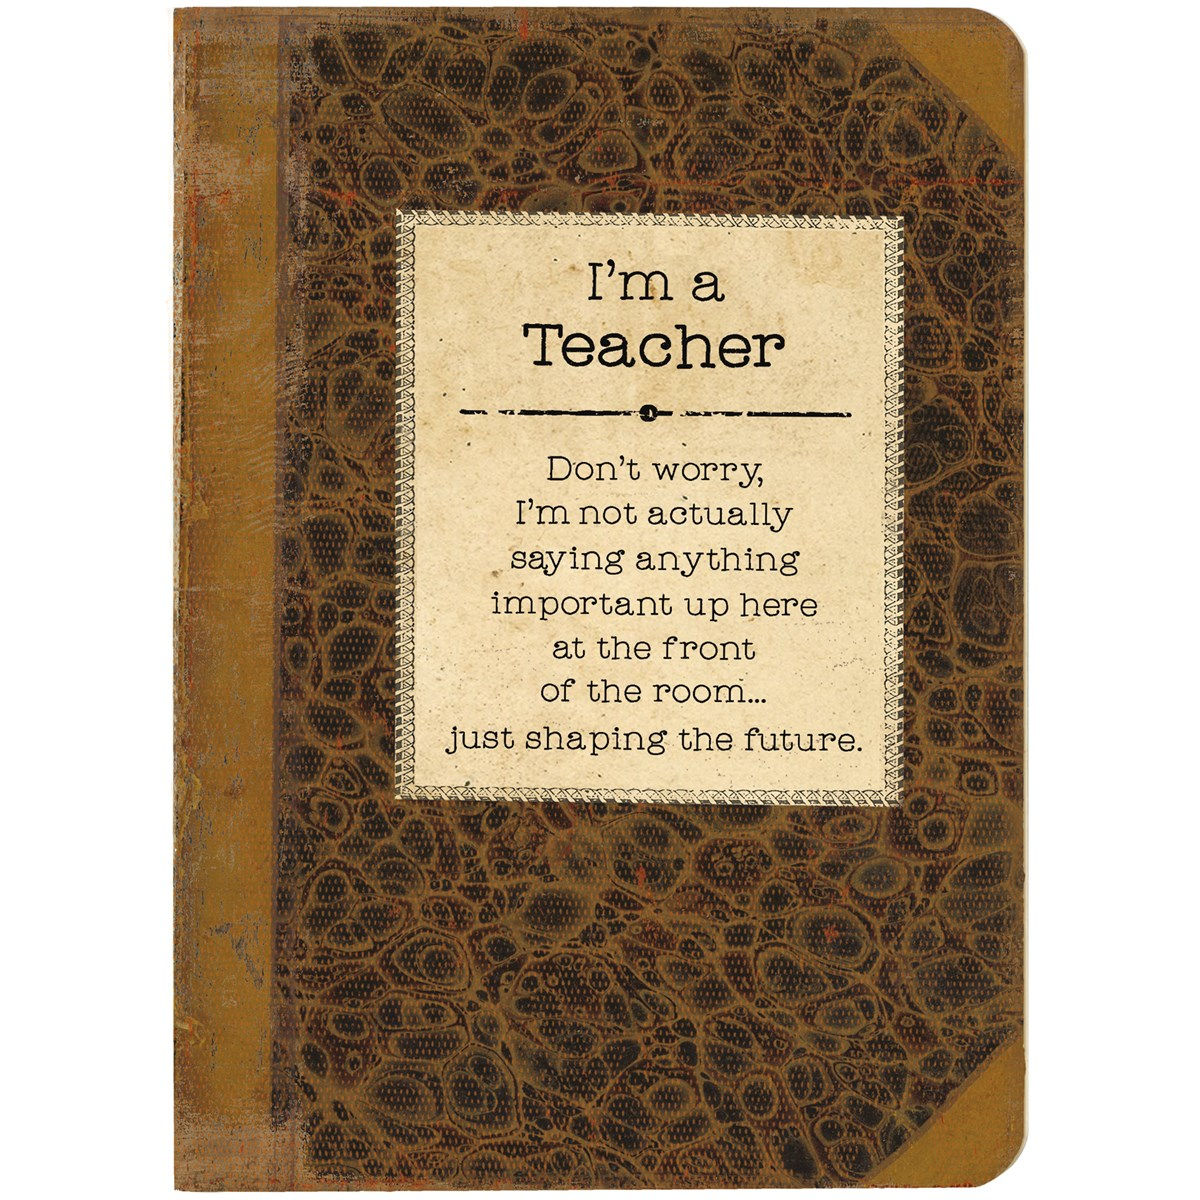 "Journal - I'm A Teacher - 5.25"" x 7.25"" x 0.75"" - Paper"